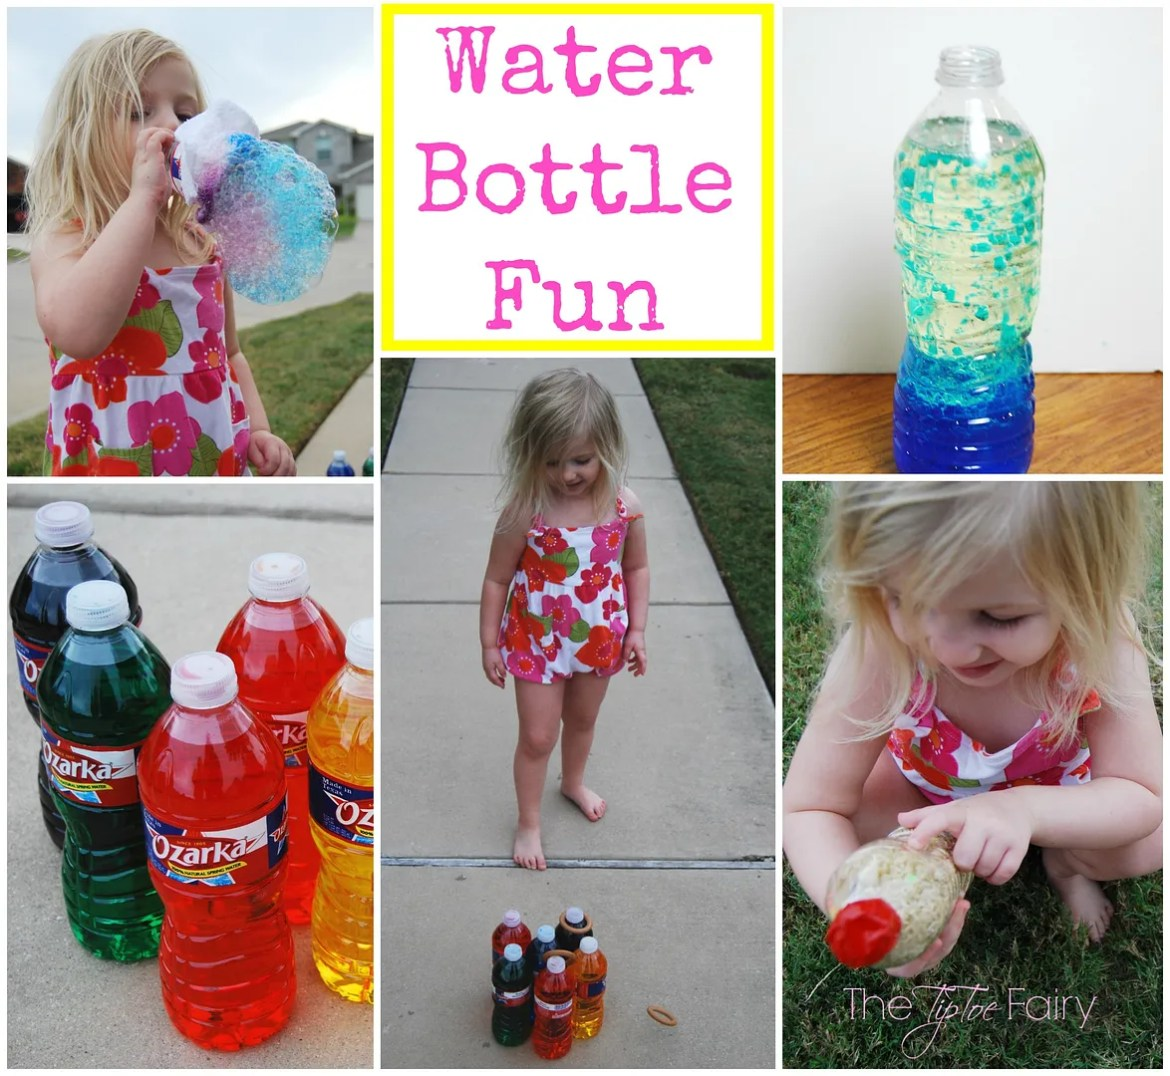 Water Bottle Fun | The TipToe Fairy #HealthyHydration #CollectiveBias #Ad #kidscrafts #crafttutorial